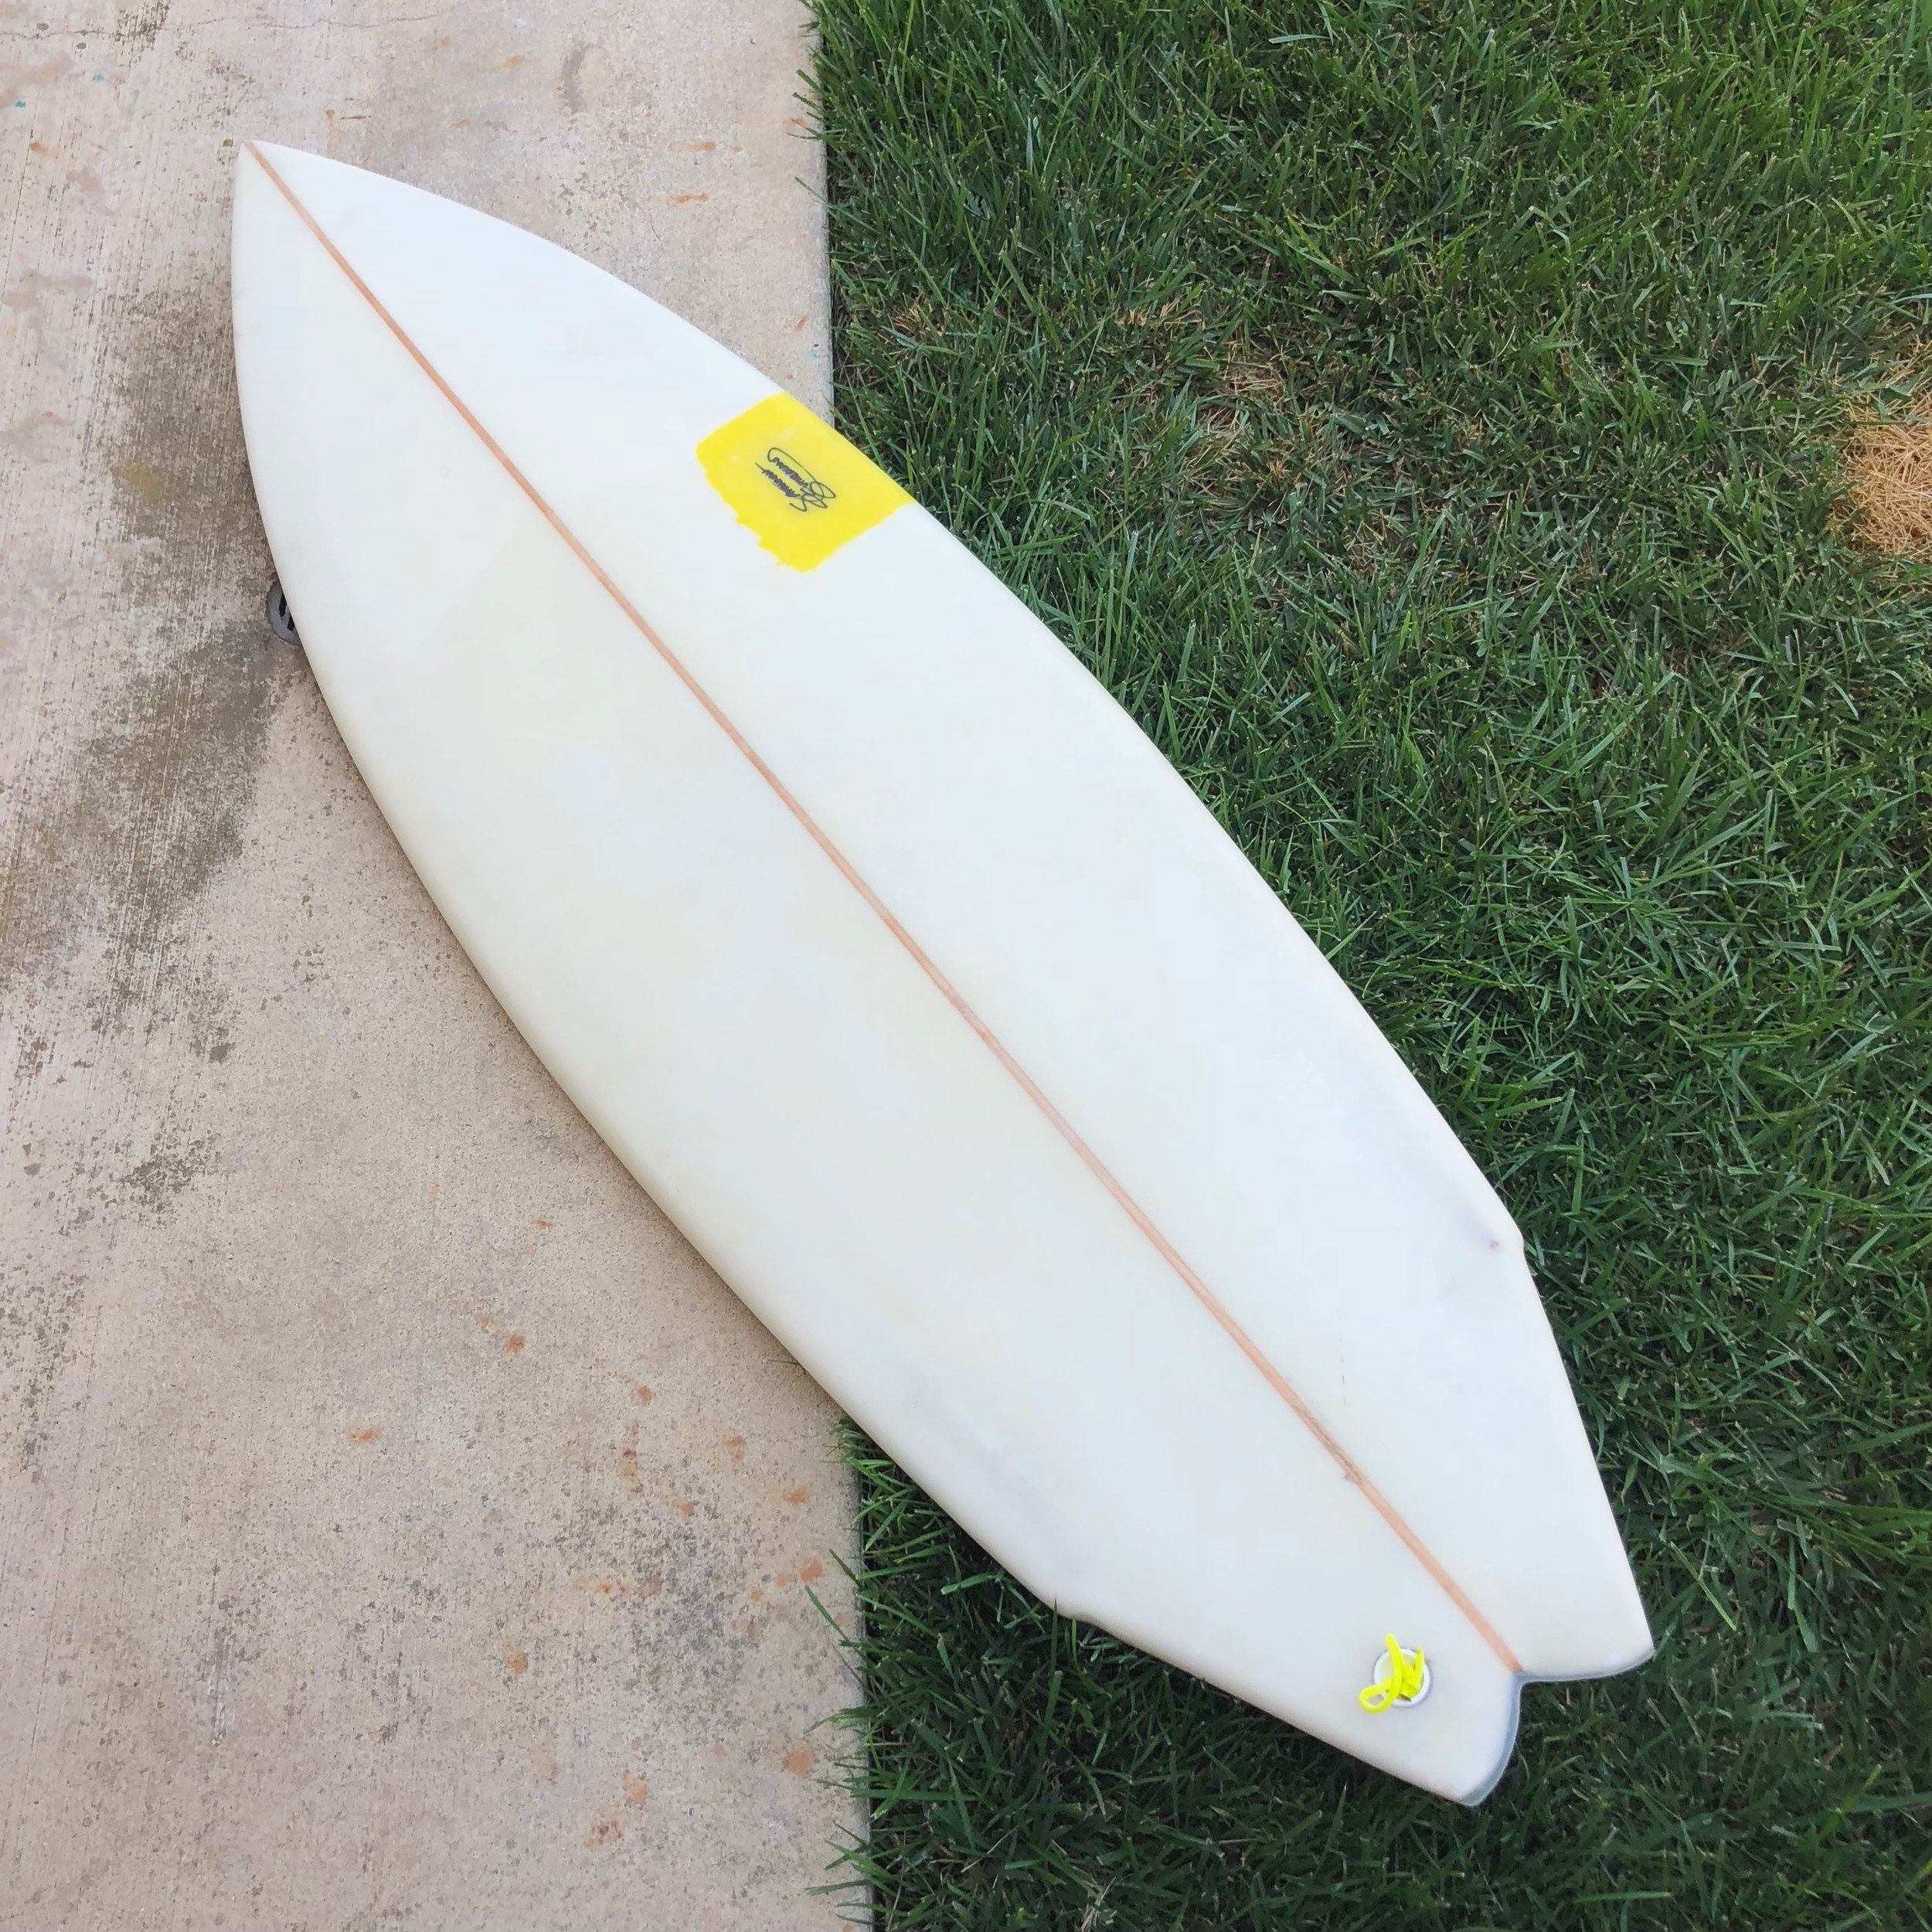 5'4 Two Step Twin Fin with futures